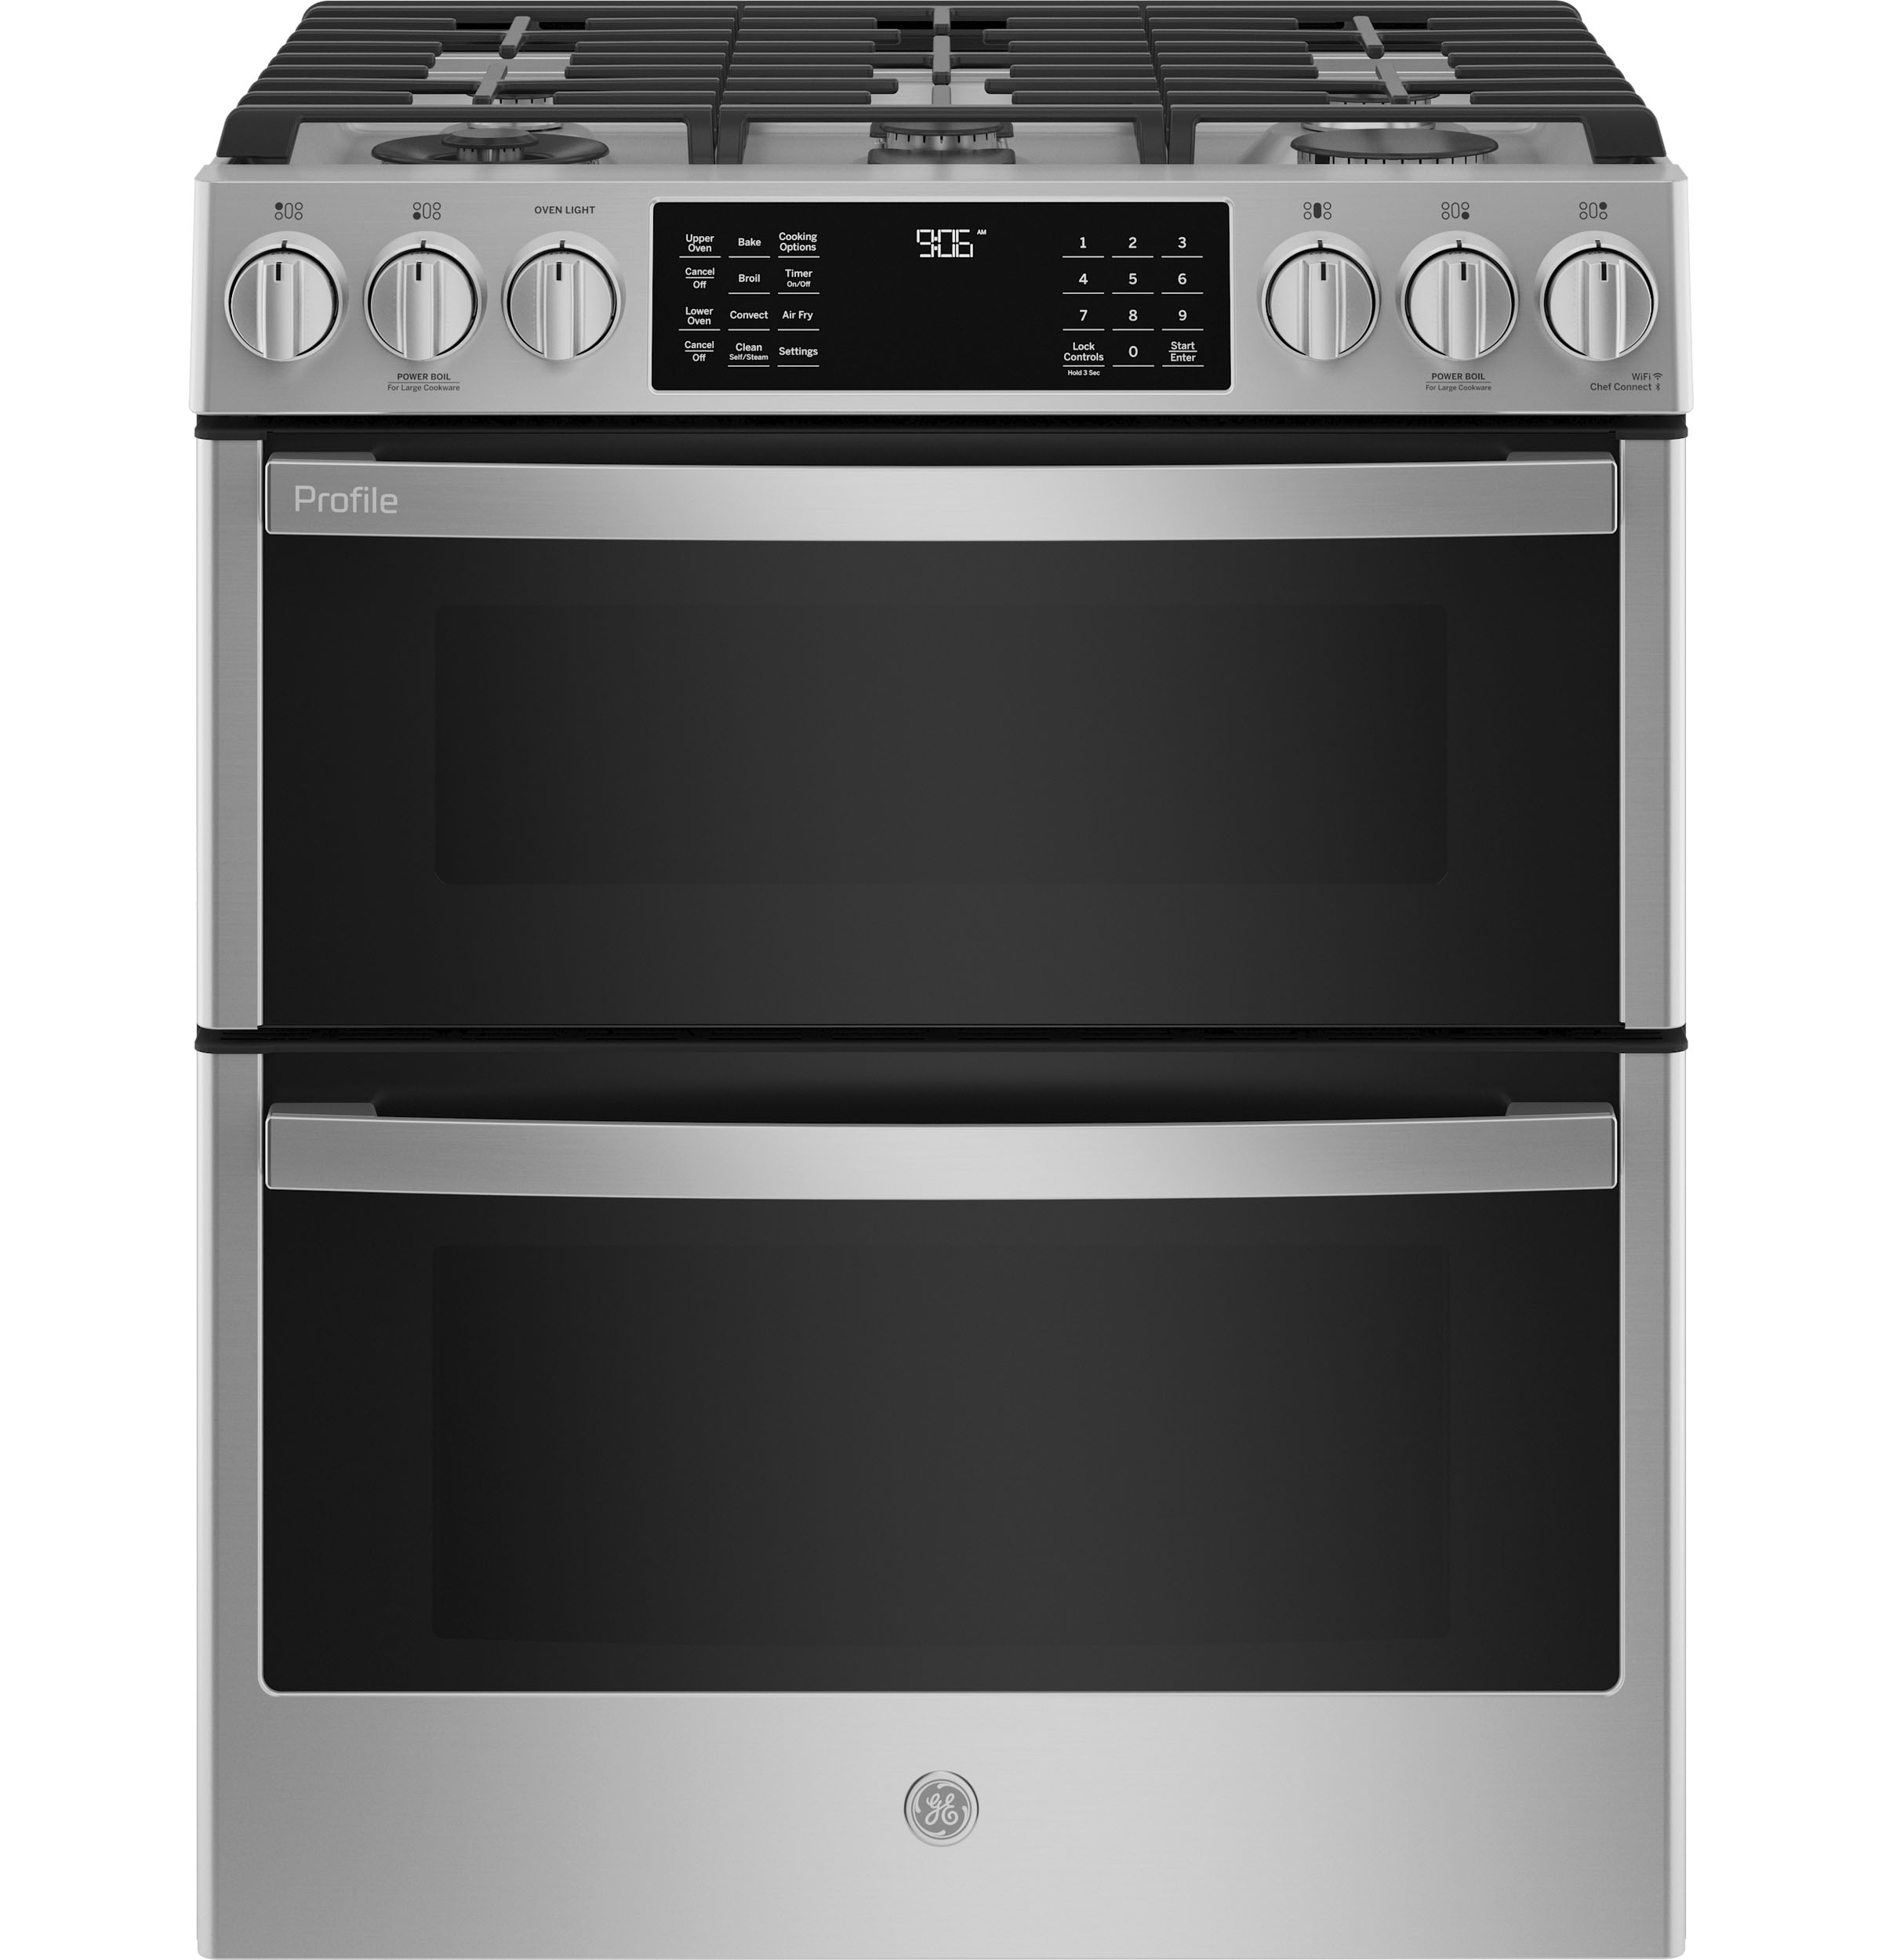 "GE Profile GE Profile™ 30"" Smart Slide-In Front-Control Gas Double Oven Convection Fingerprint Resistant Range"